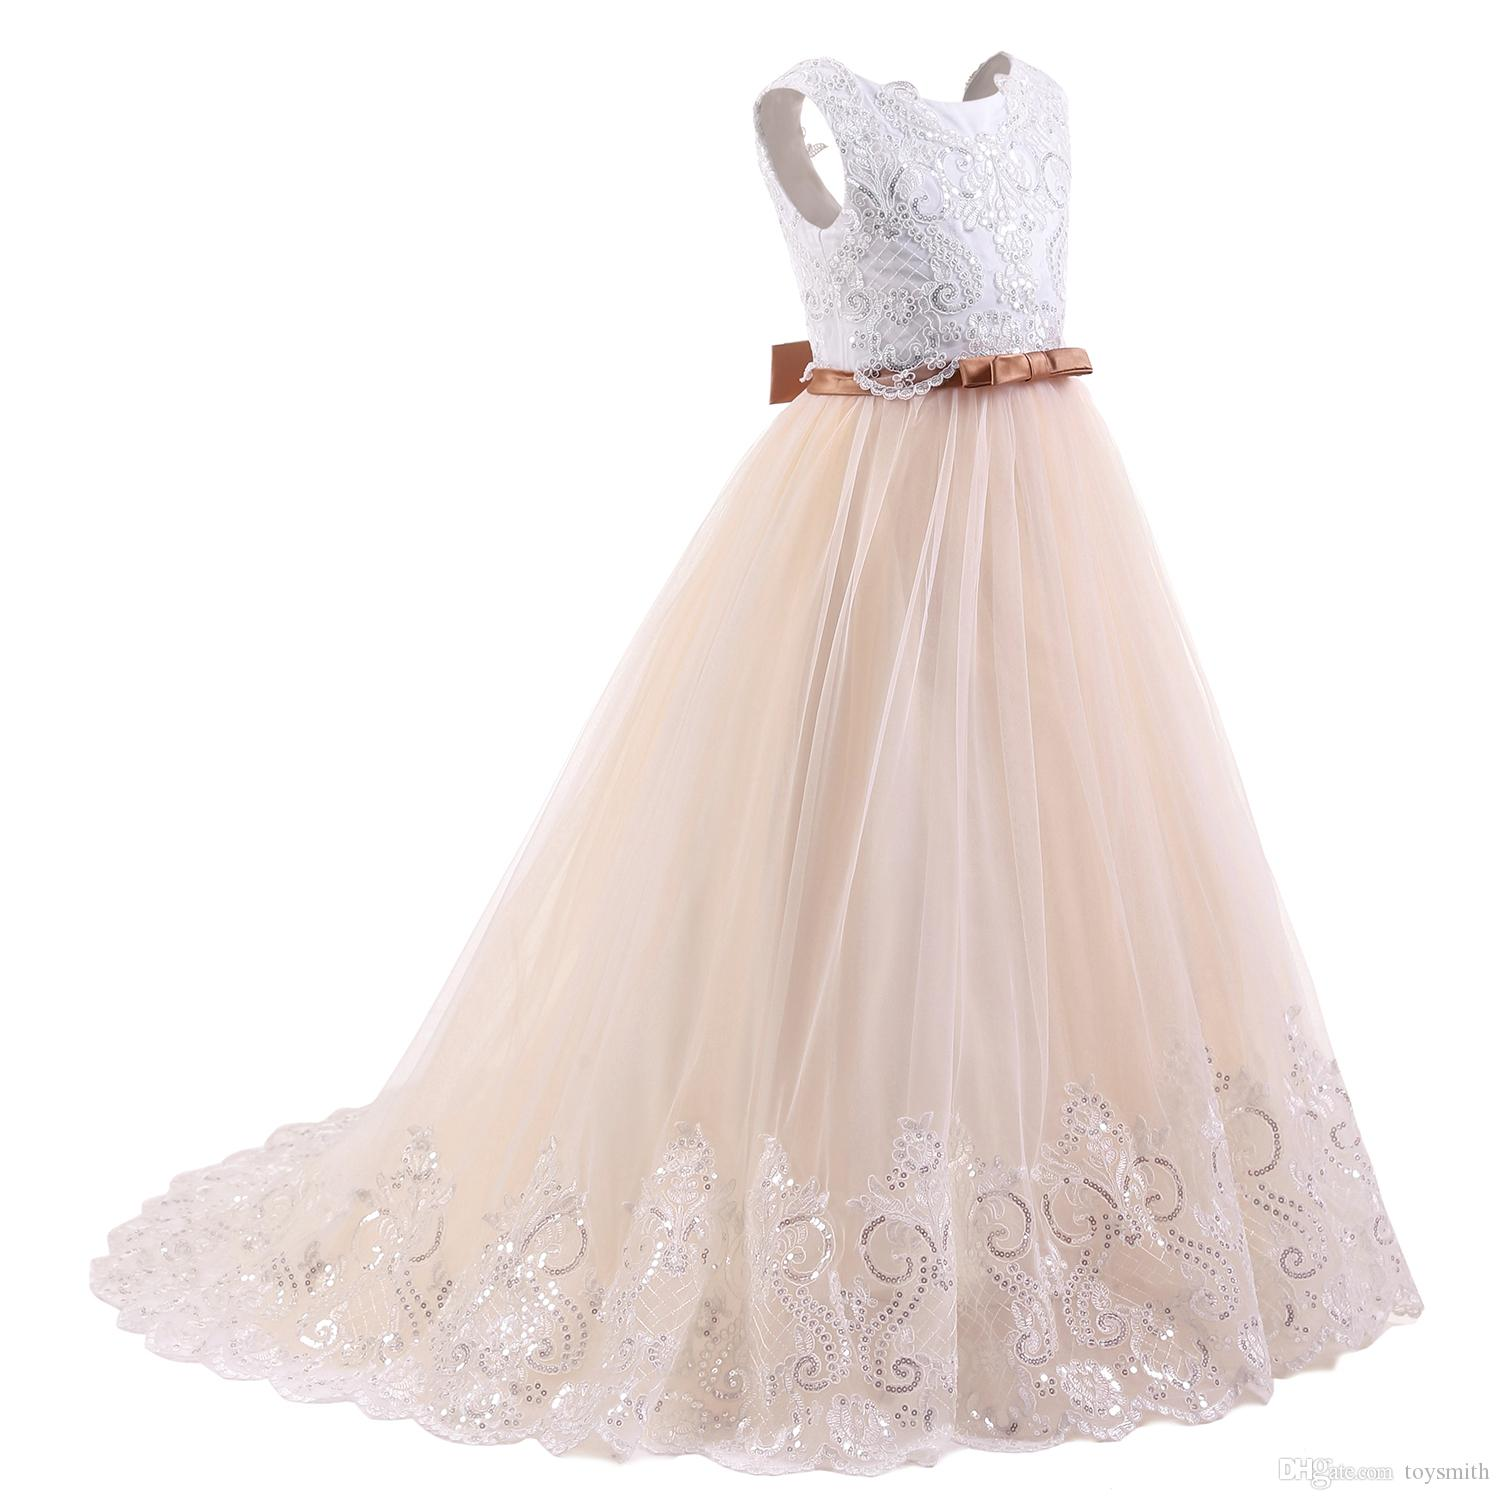 2018 New Fashion Tulle Jewel Applique Sleeveless Sequins Flower Girl Dresses Children's Pageant Dress White Bow